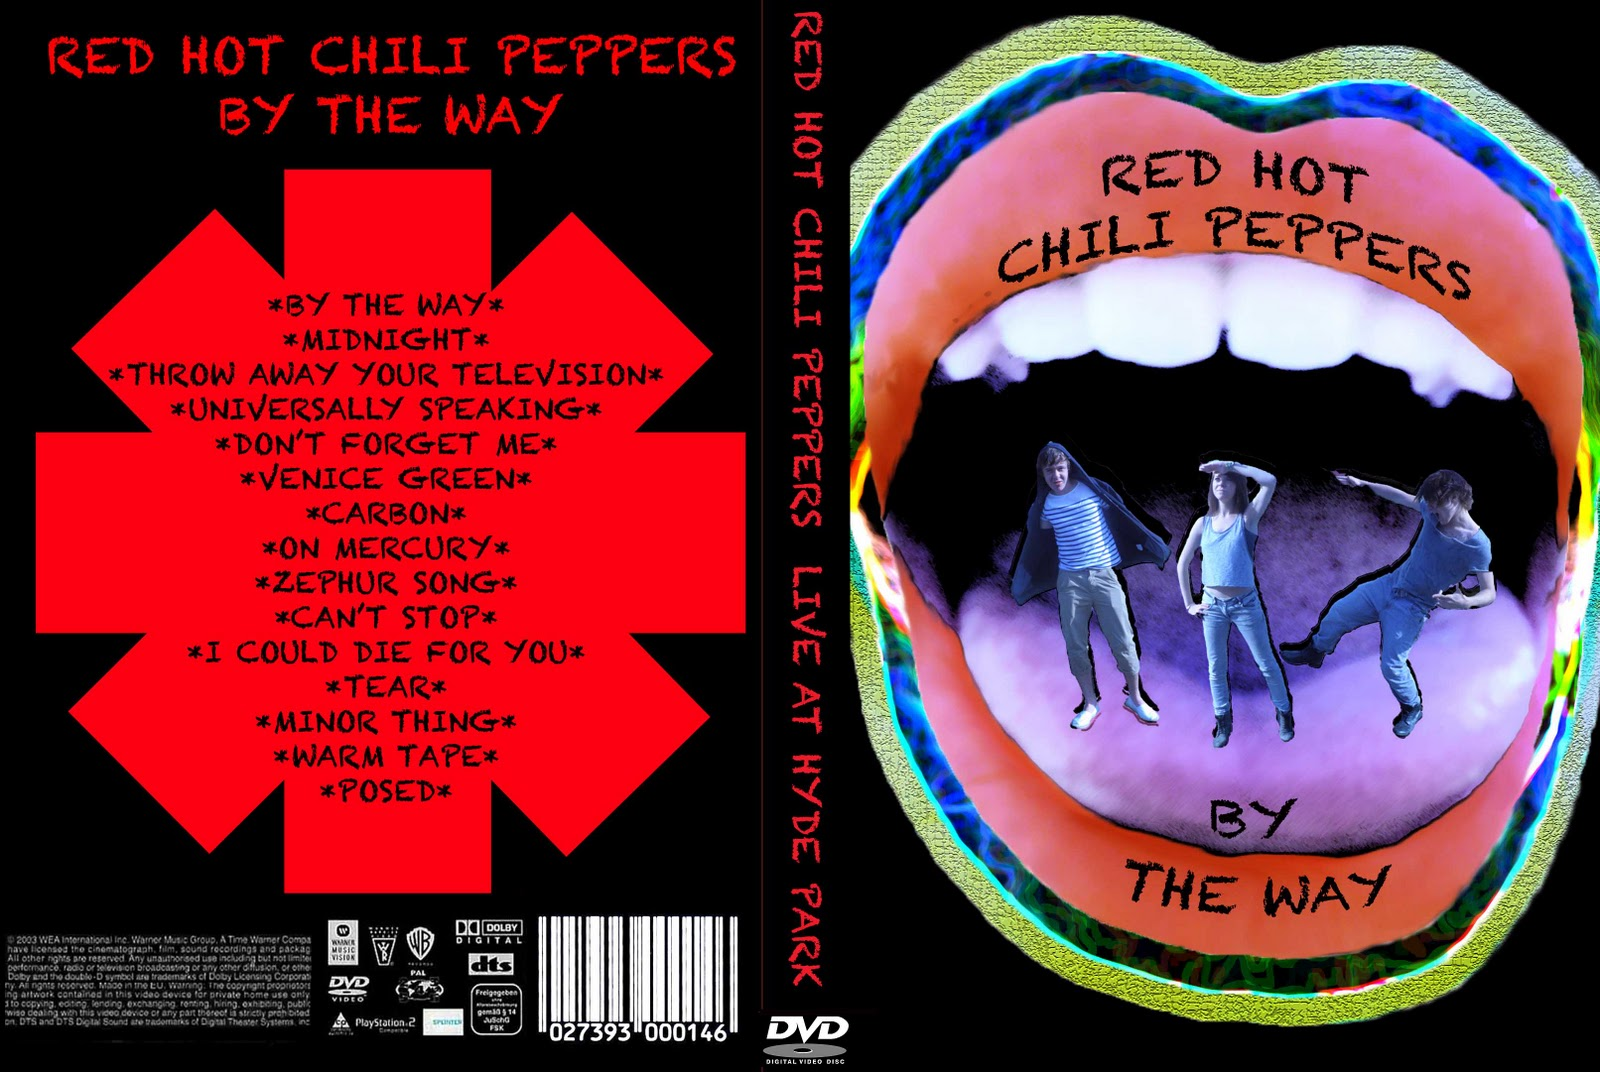 a2 music videos red hot chili peppers dvd cover final. Black Bedroom Furniture Sets. Home Design Ideas